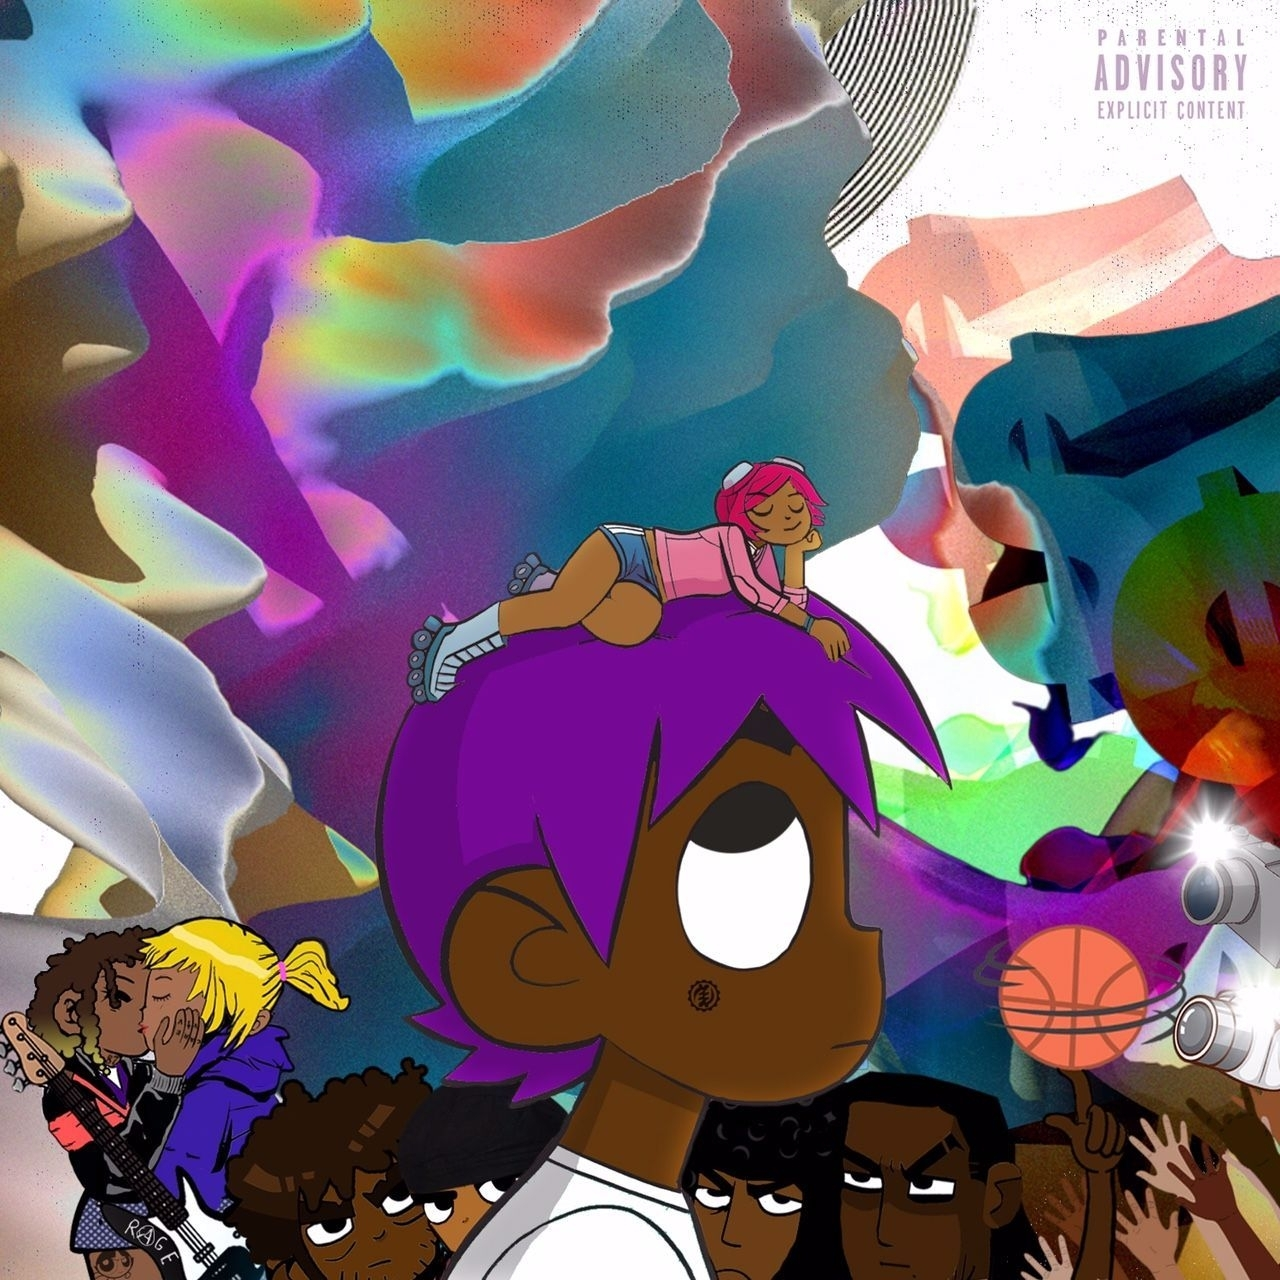 lil uzi vert - money longer album cover | music inspo | pinterest